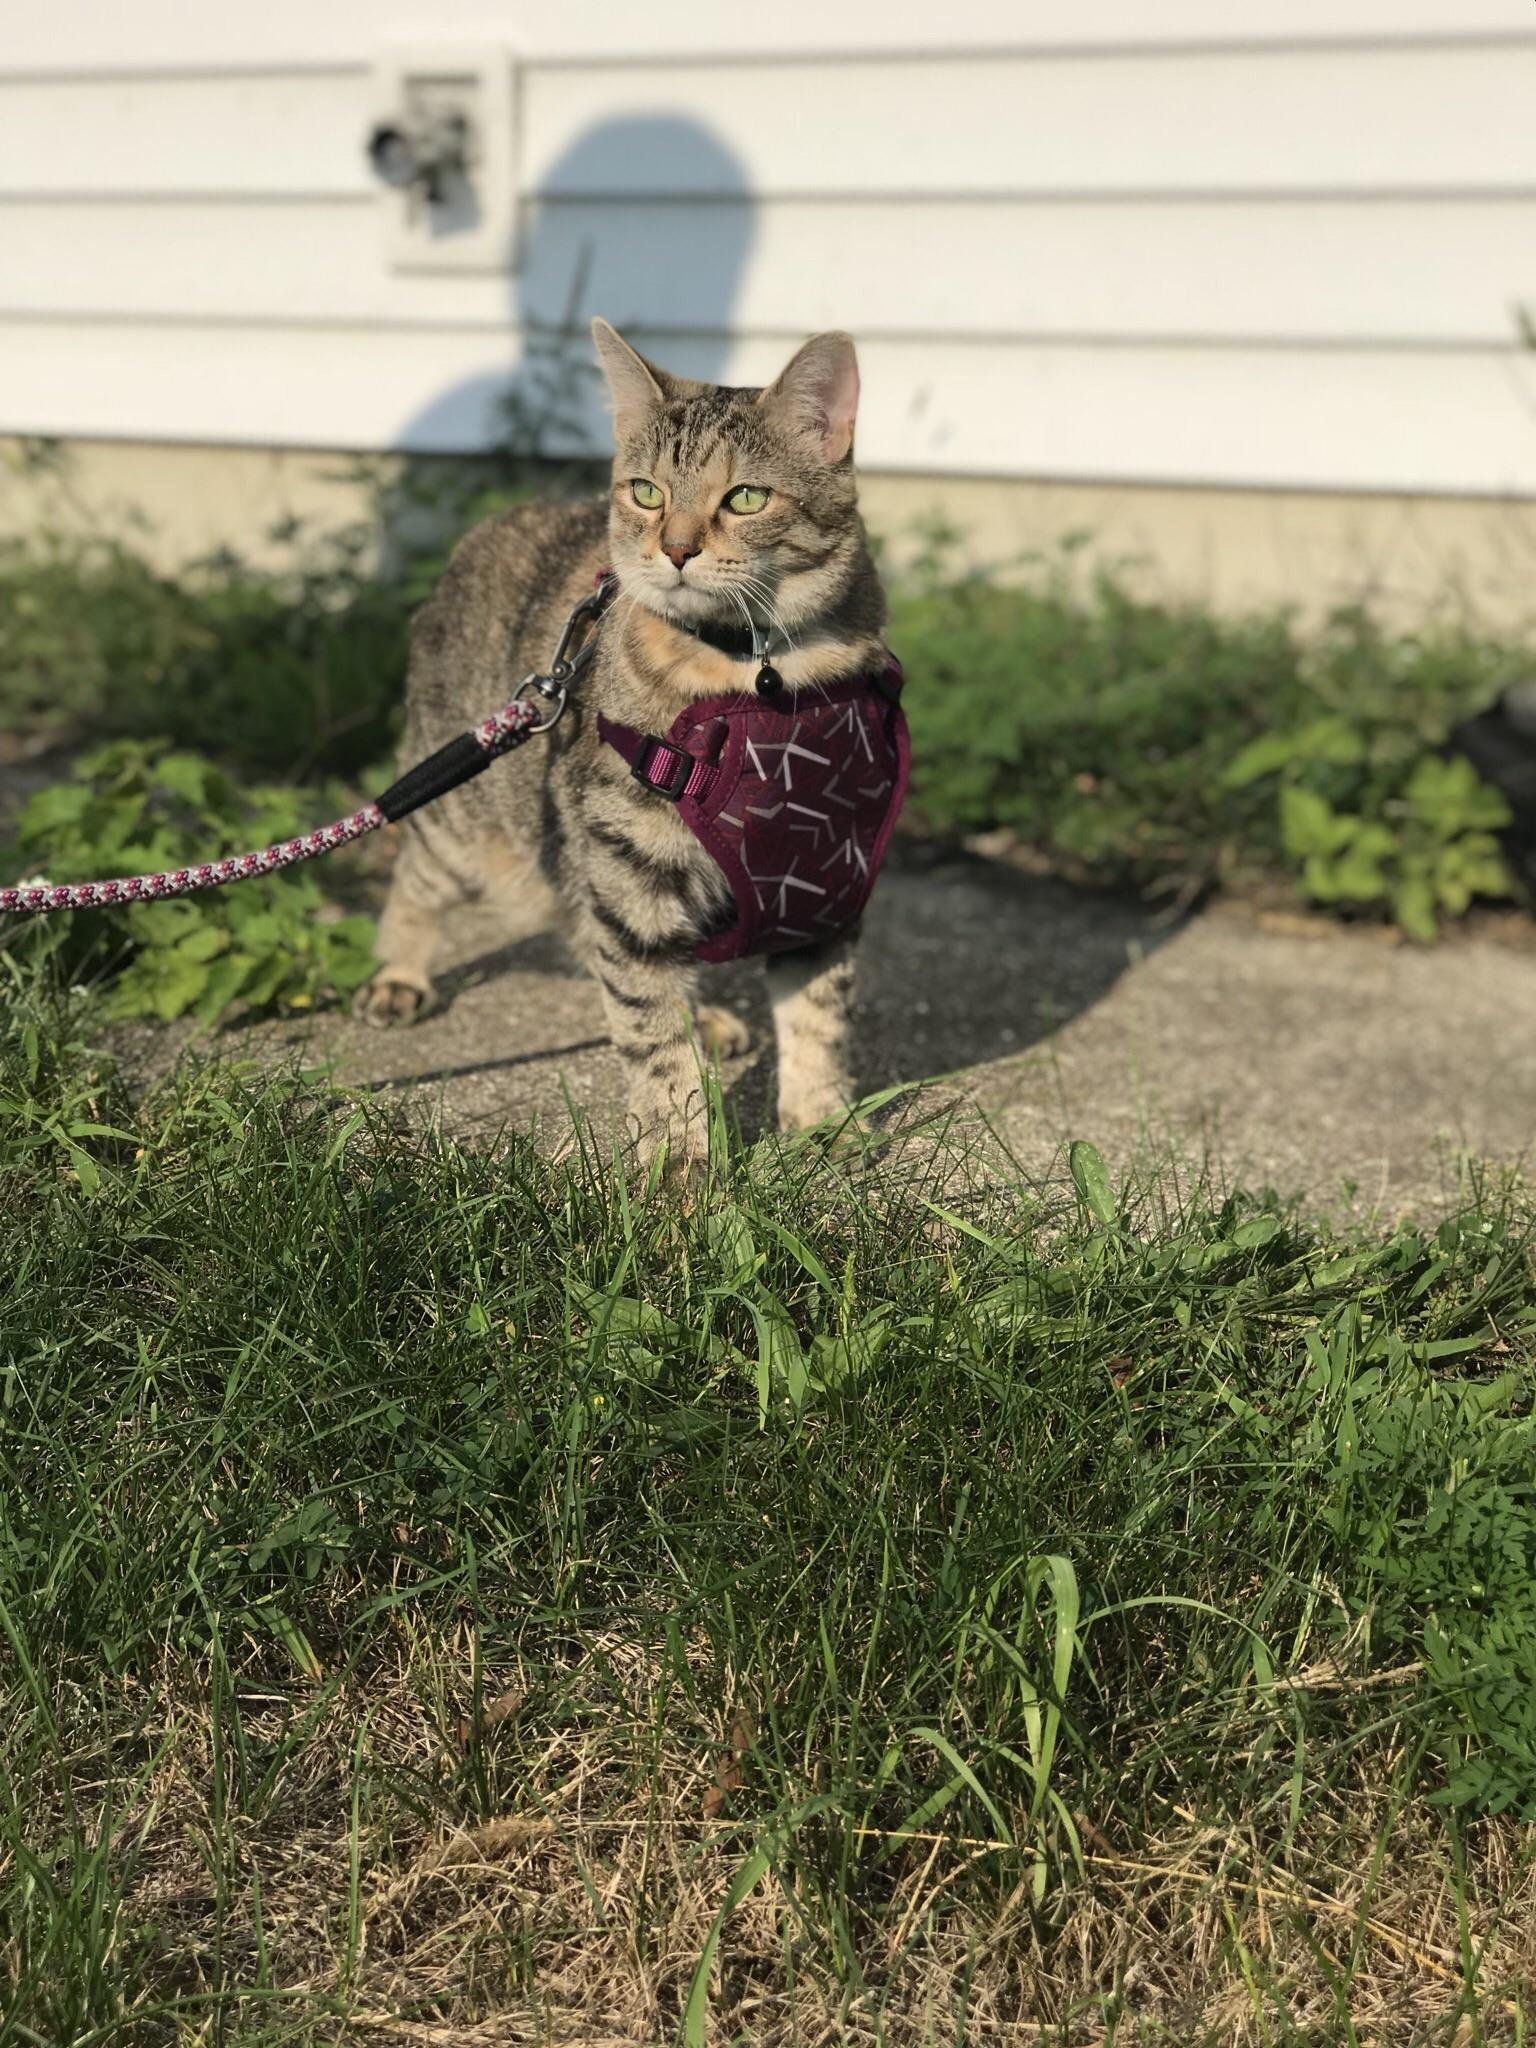 My Cat Nebs Being A Model While We Took A Walk Outside Today Meow Moe Cats Kittens Cutest Cute Cats